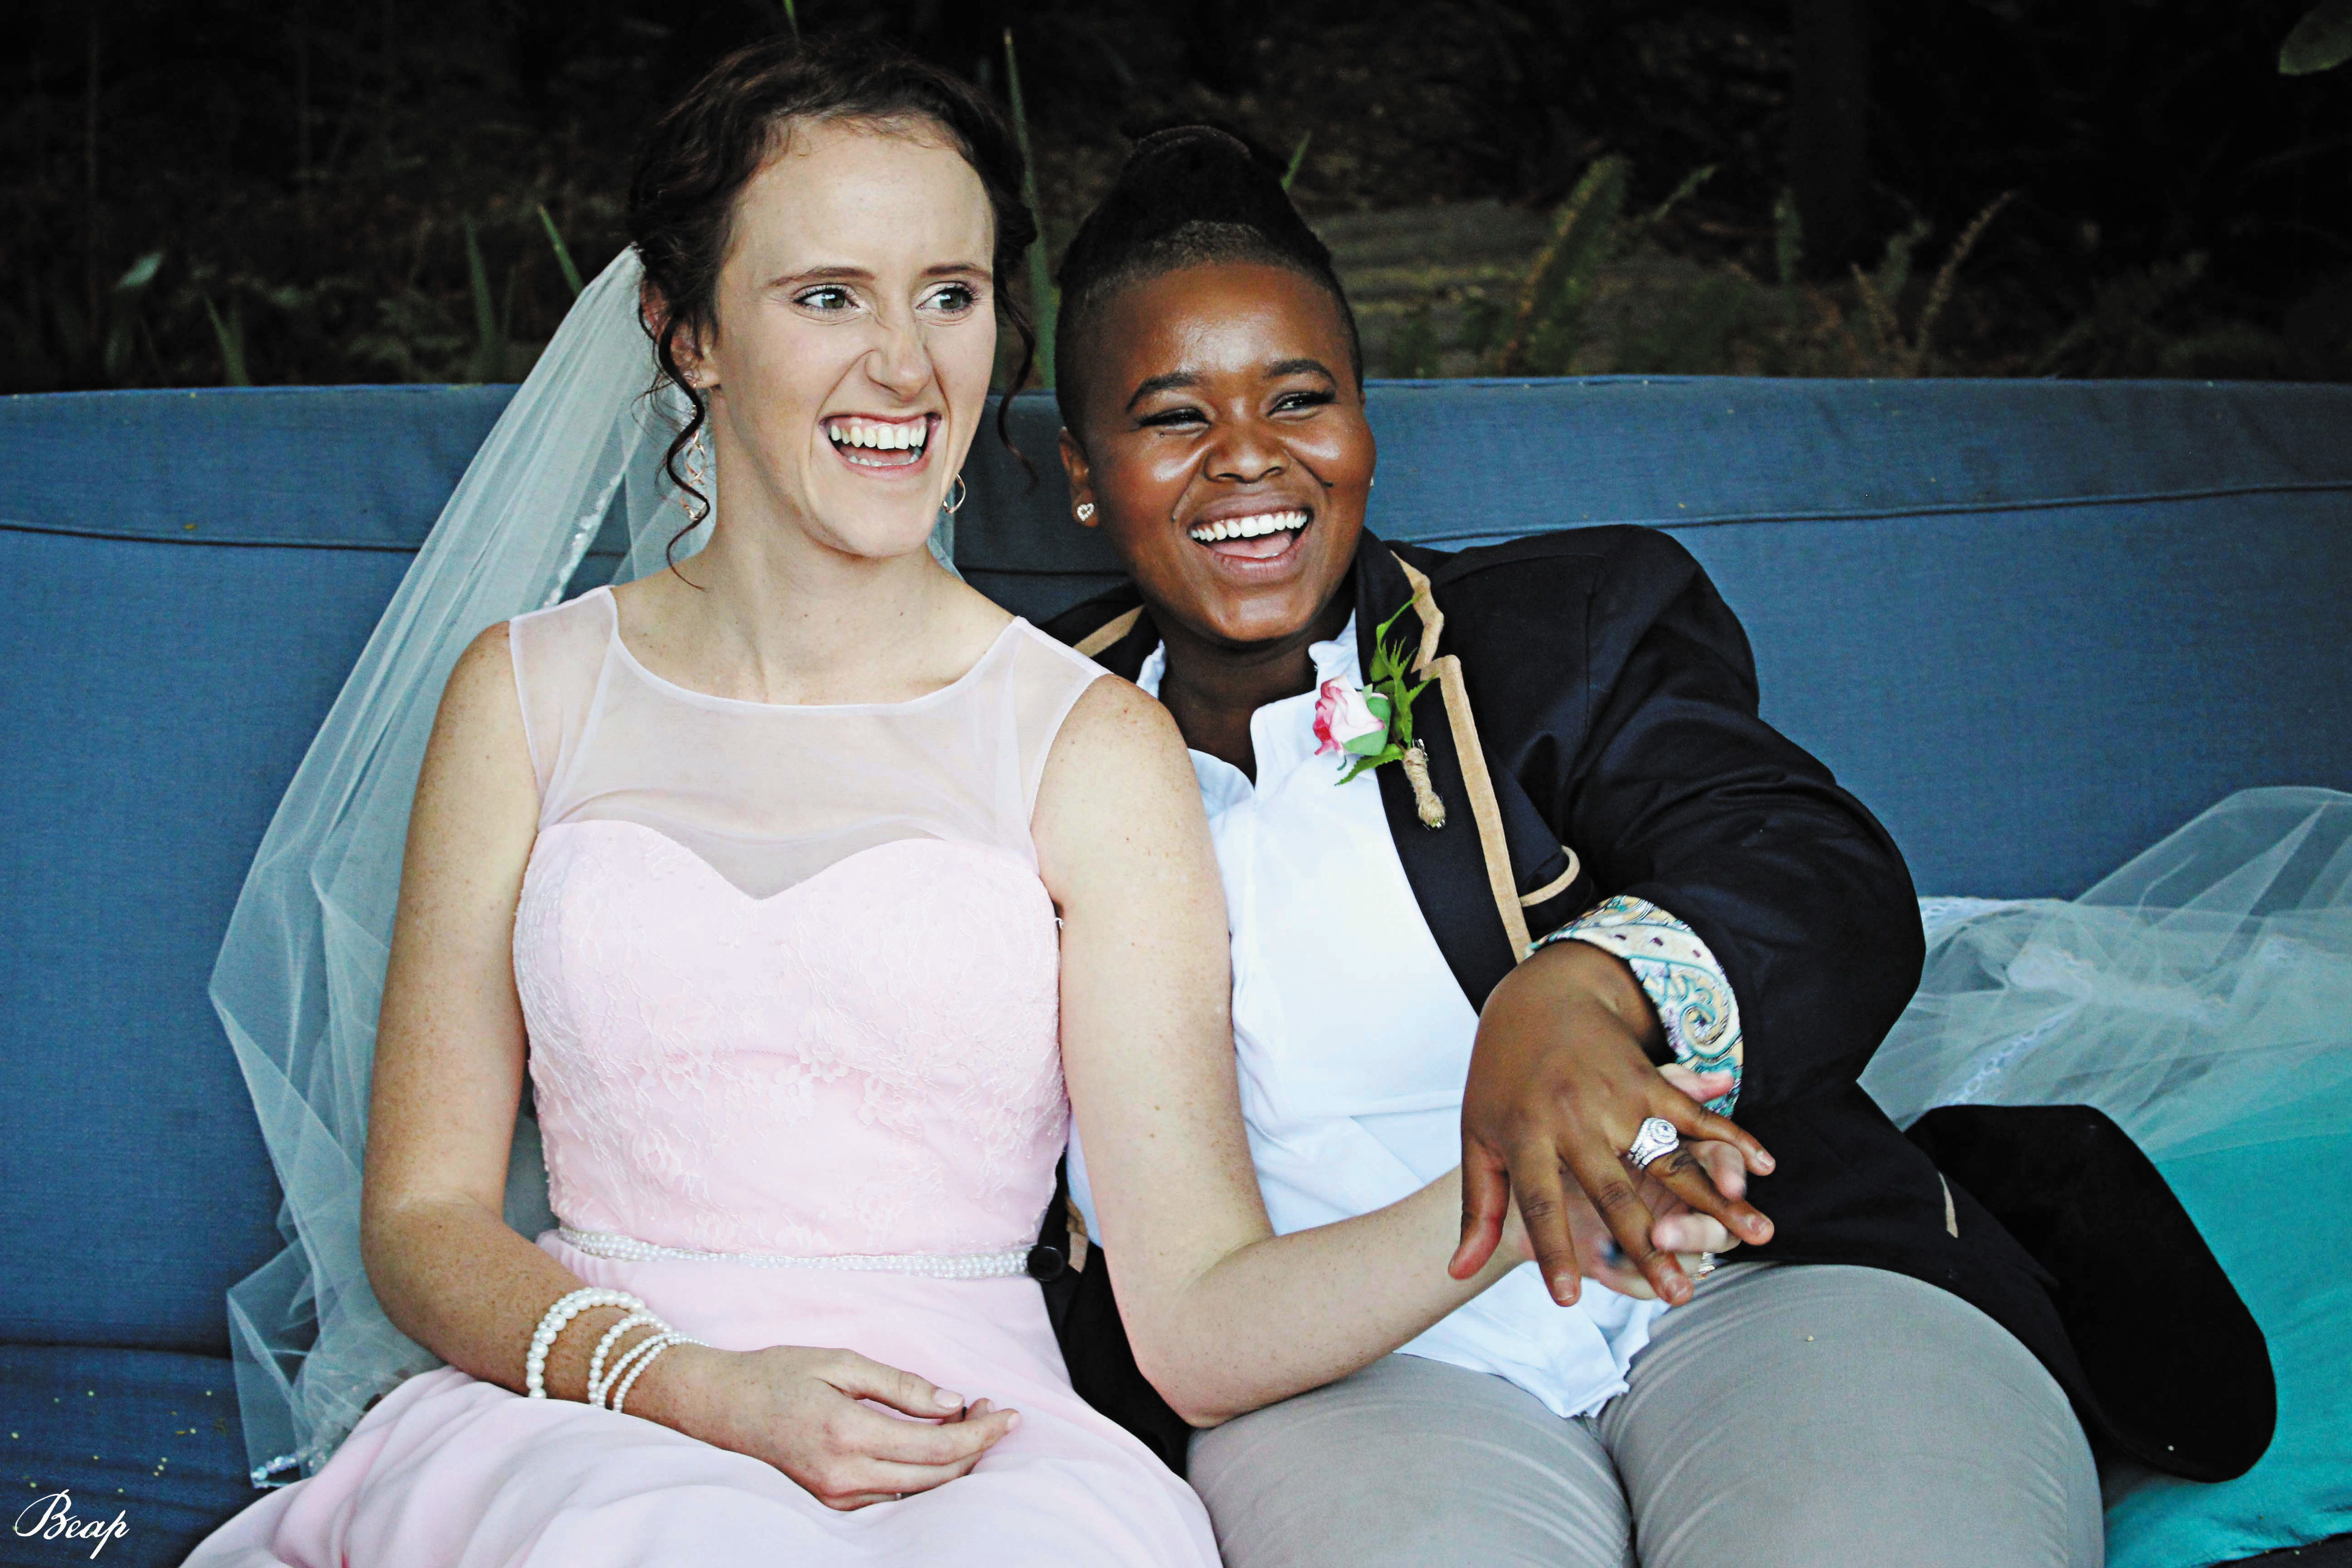 This Lesbian Bridal Magazine Offers A Long-Overdue Alternative For Women In